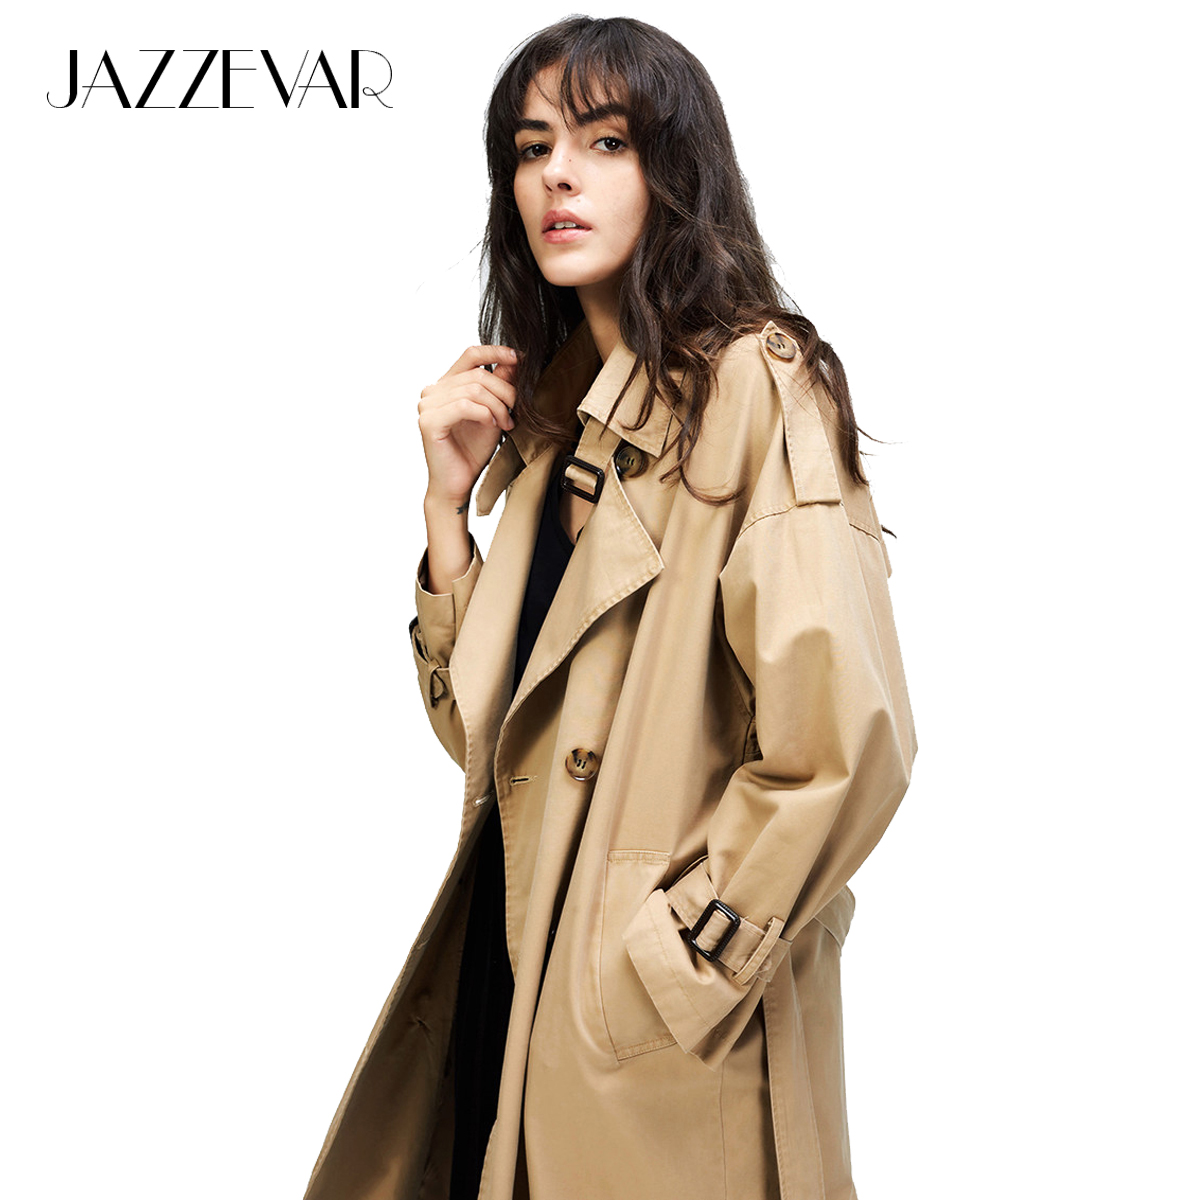 JAZZEVAR Outwear Clothing Trench-Coat Oversize Loose Vintage Autumn Double-Breasted Casual